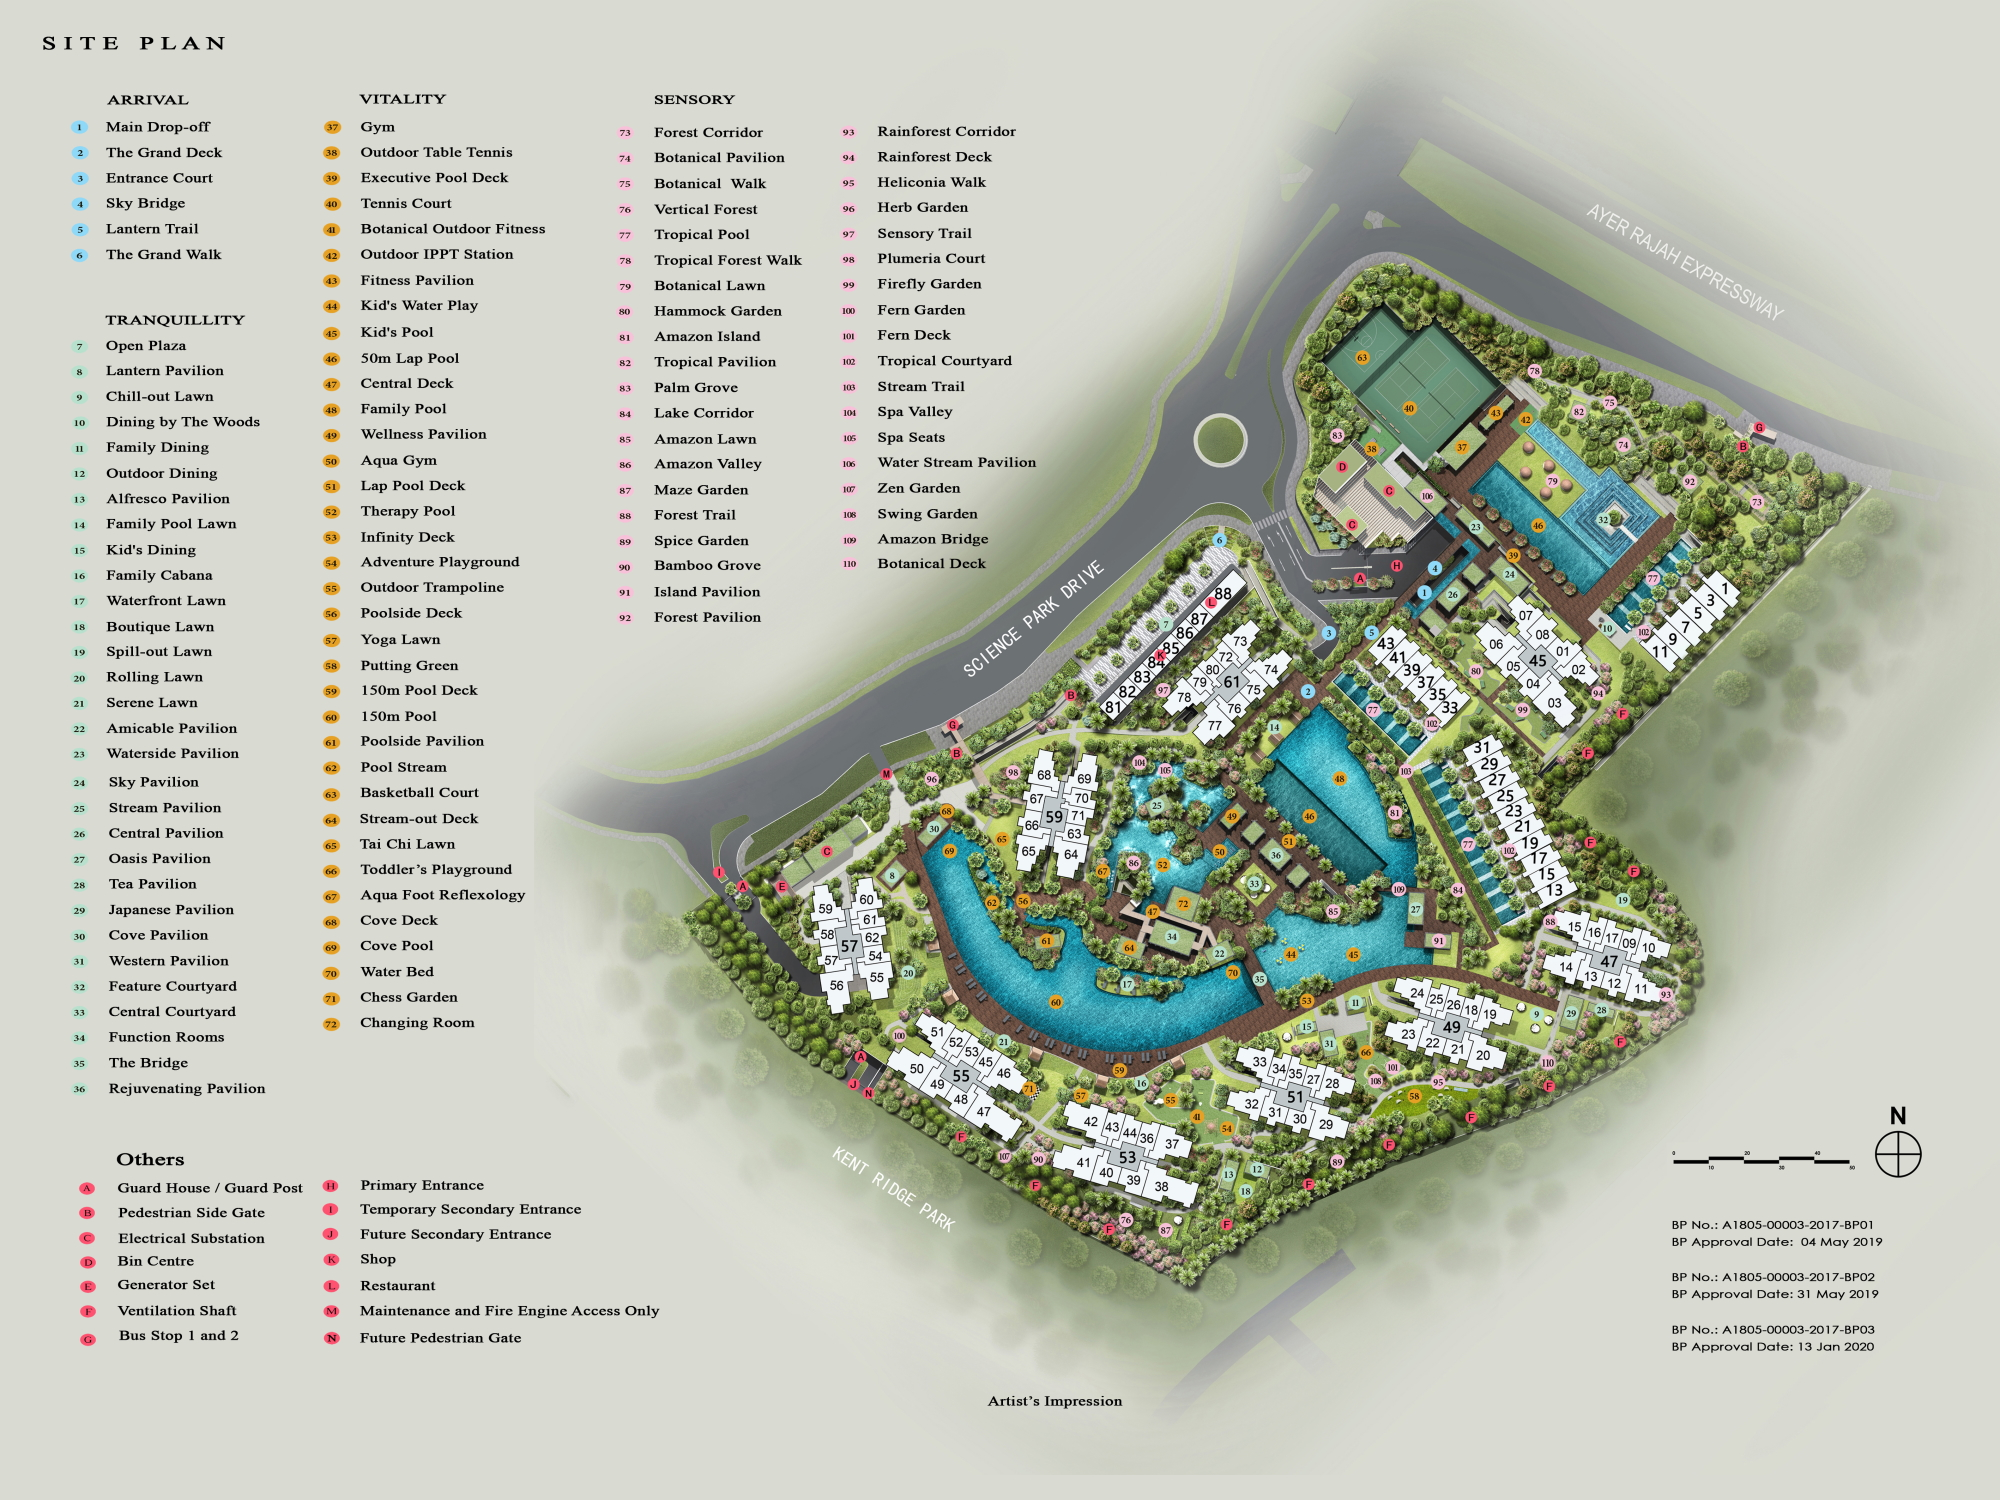 Normanton Park site plan